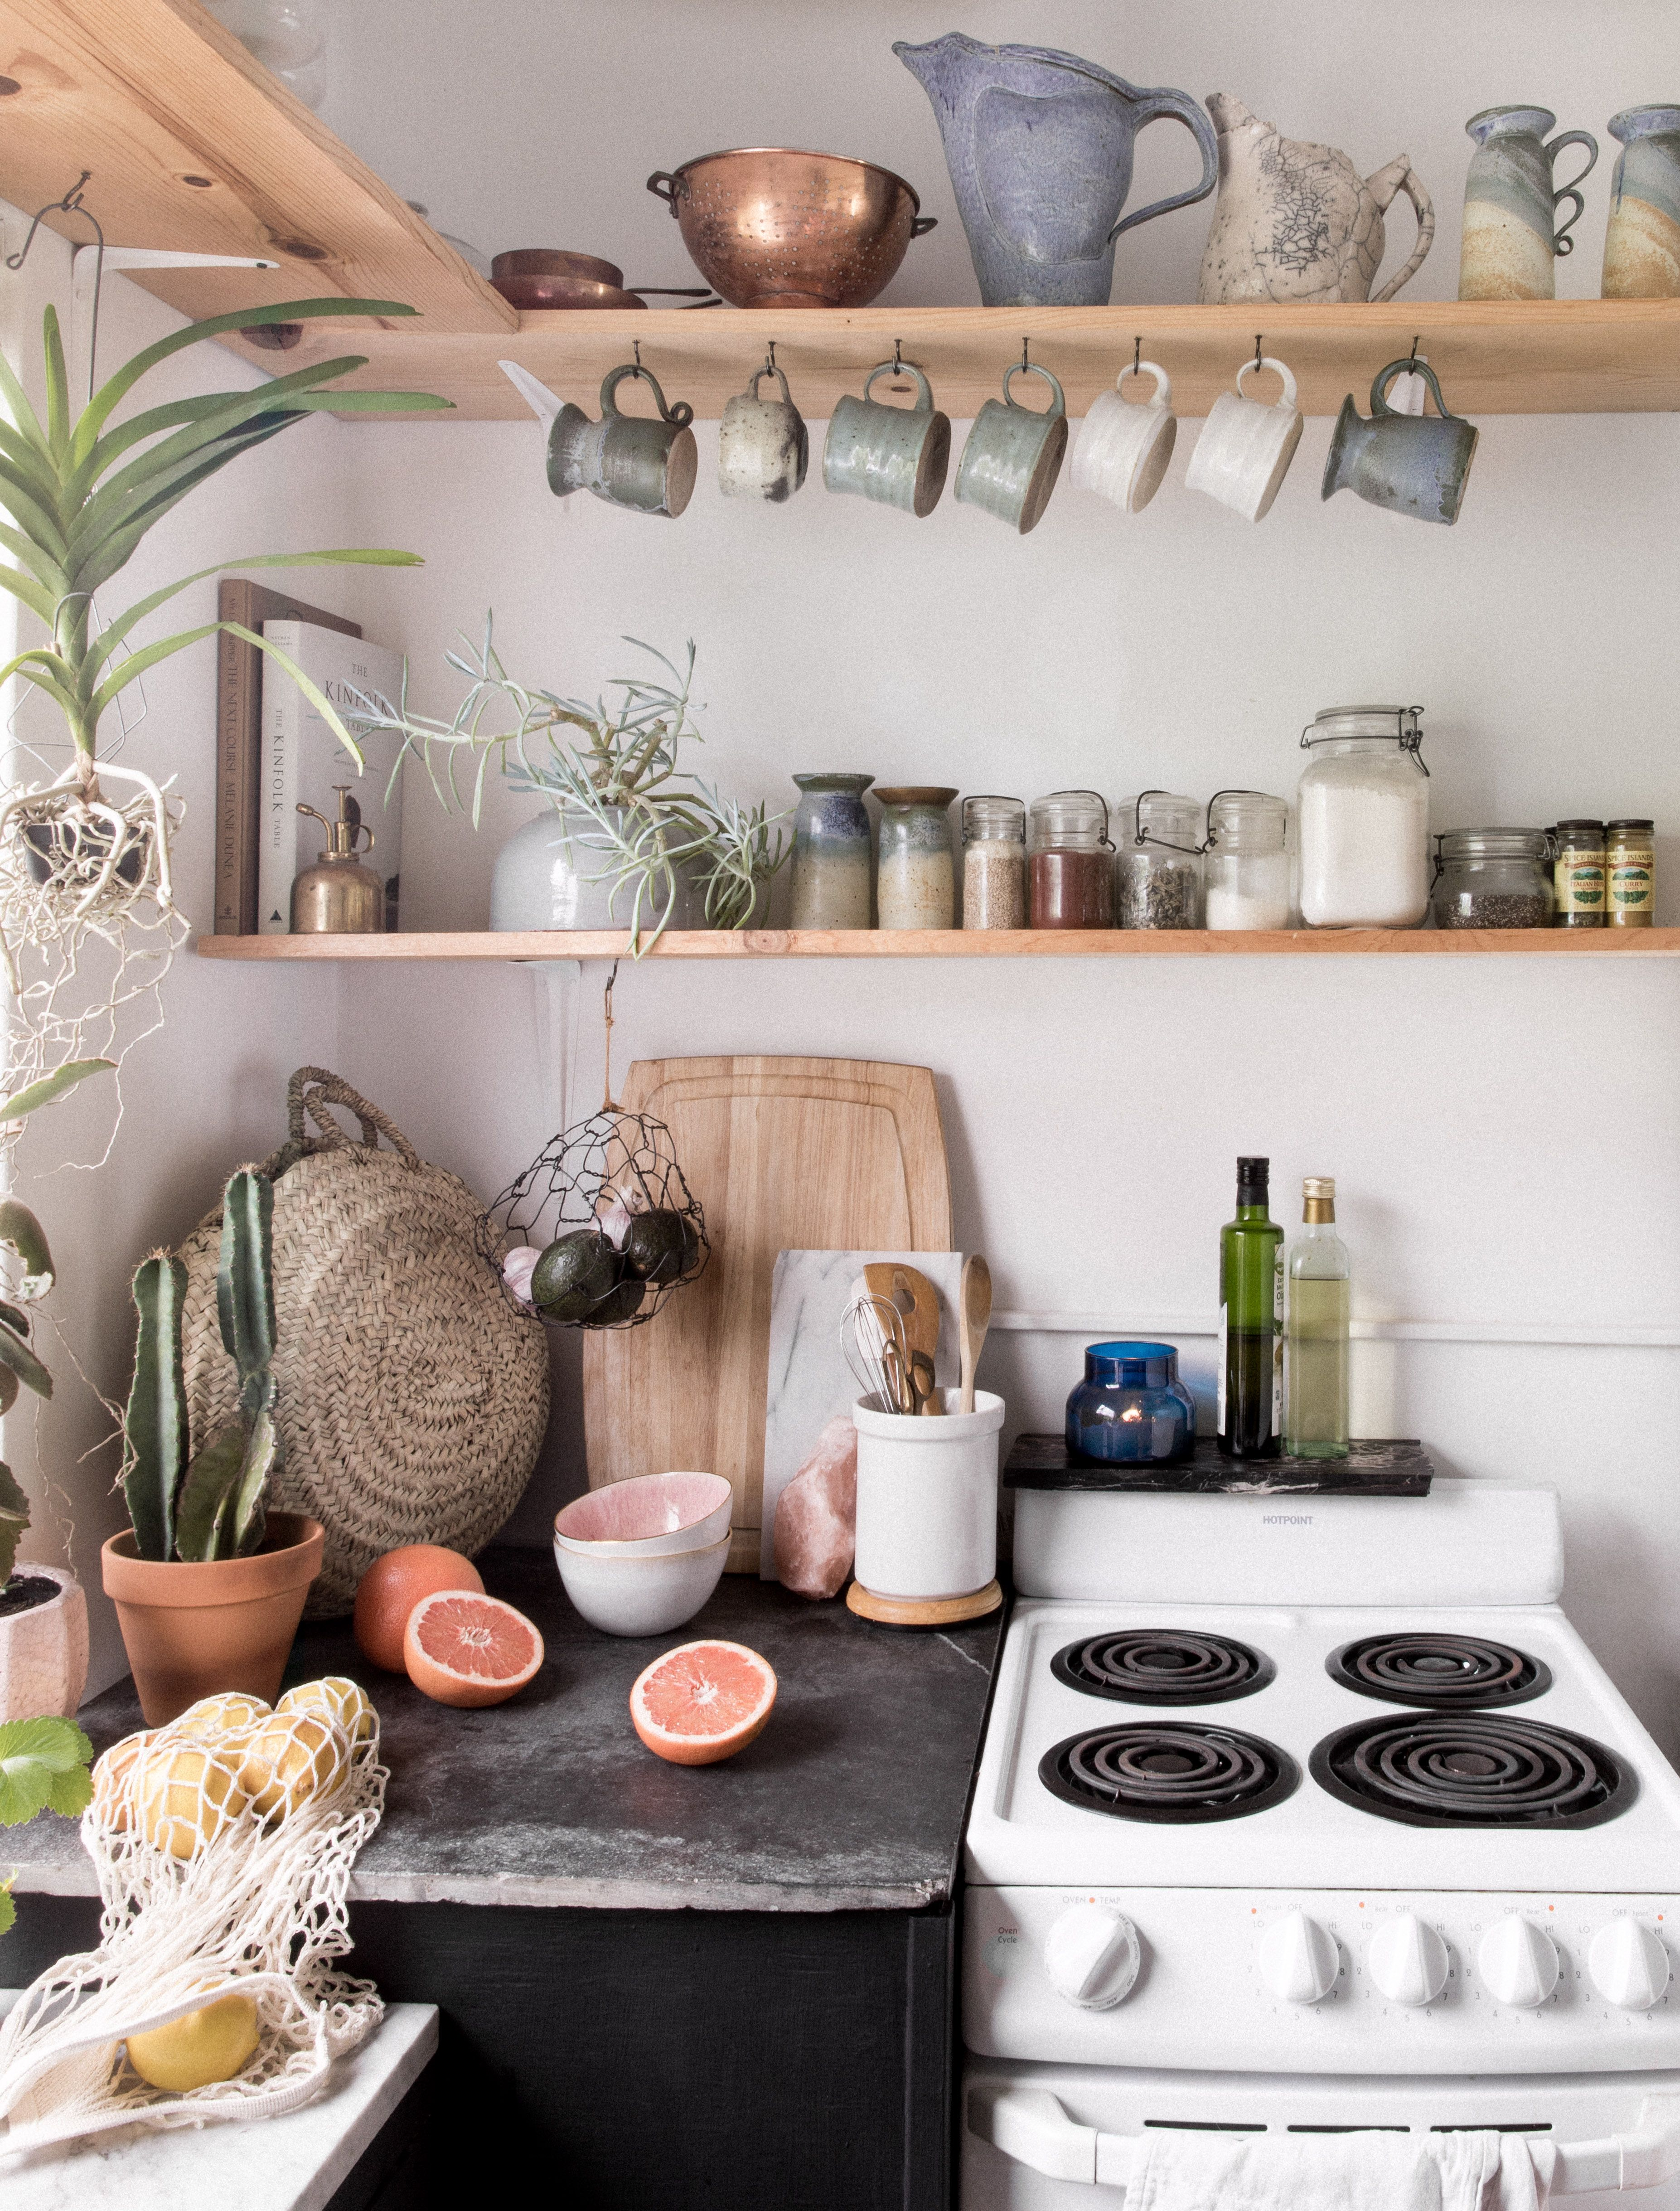 Homey Kitchen one couple turned a 650-square-foot rental into a plant-filled